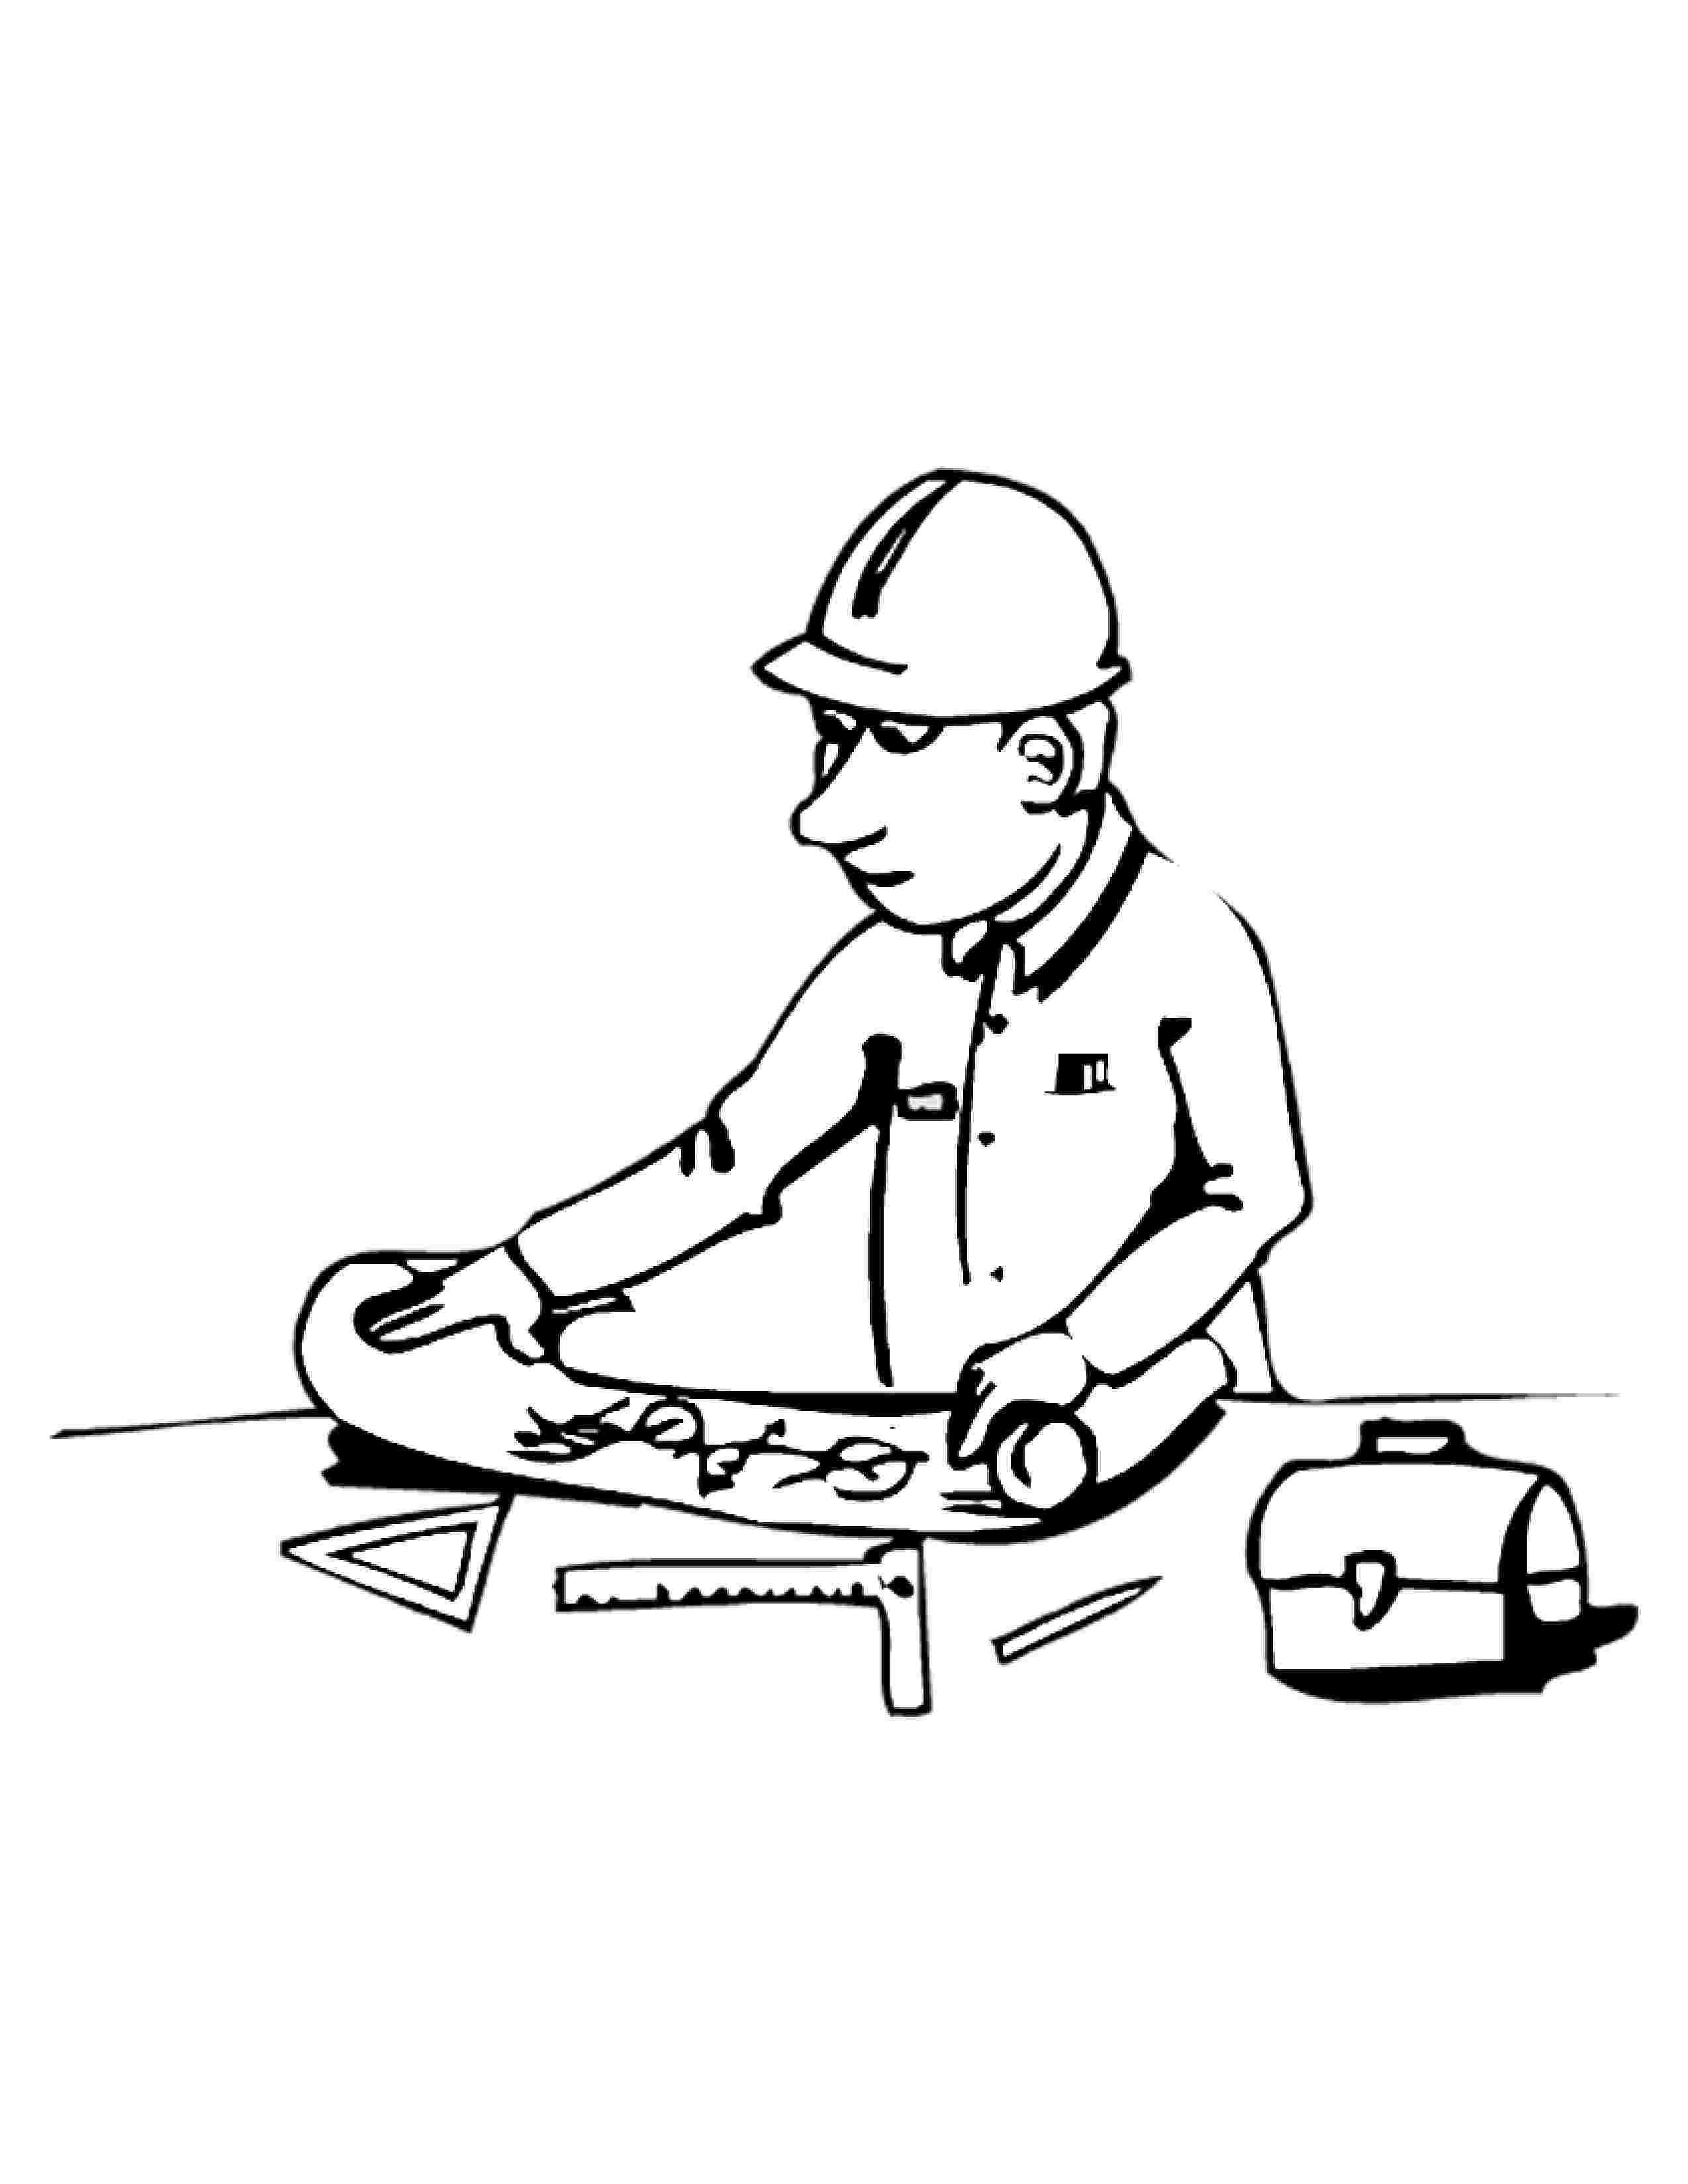 construction coloring page free construction images clipartsco construction coloring page